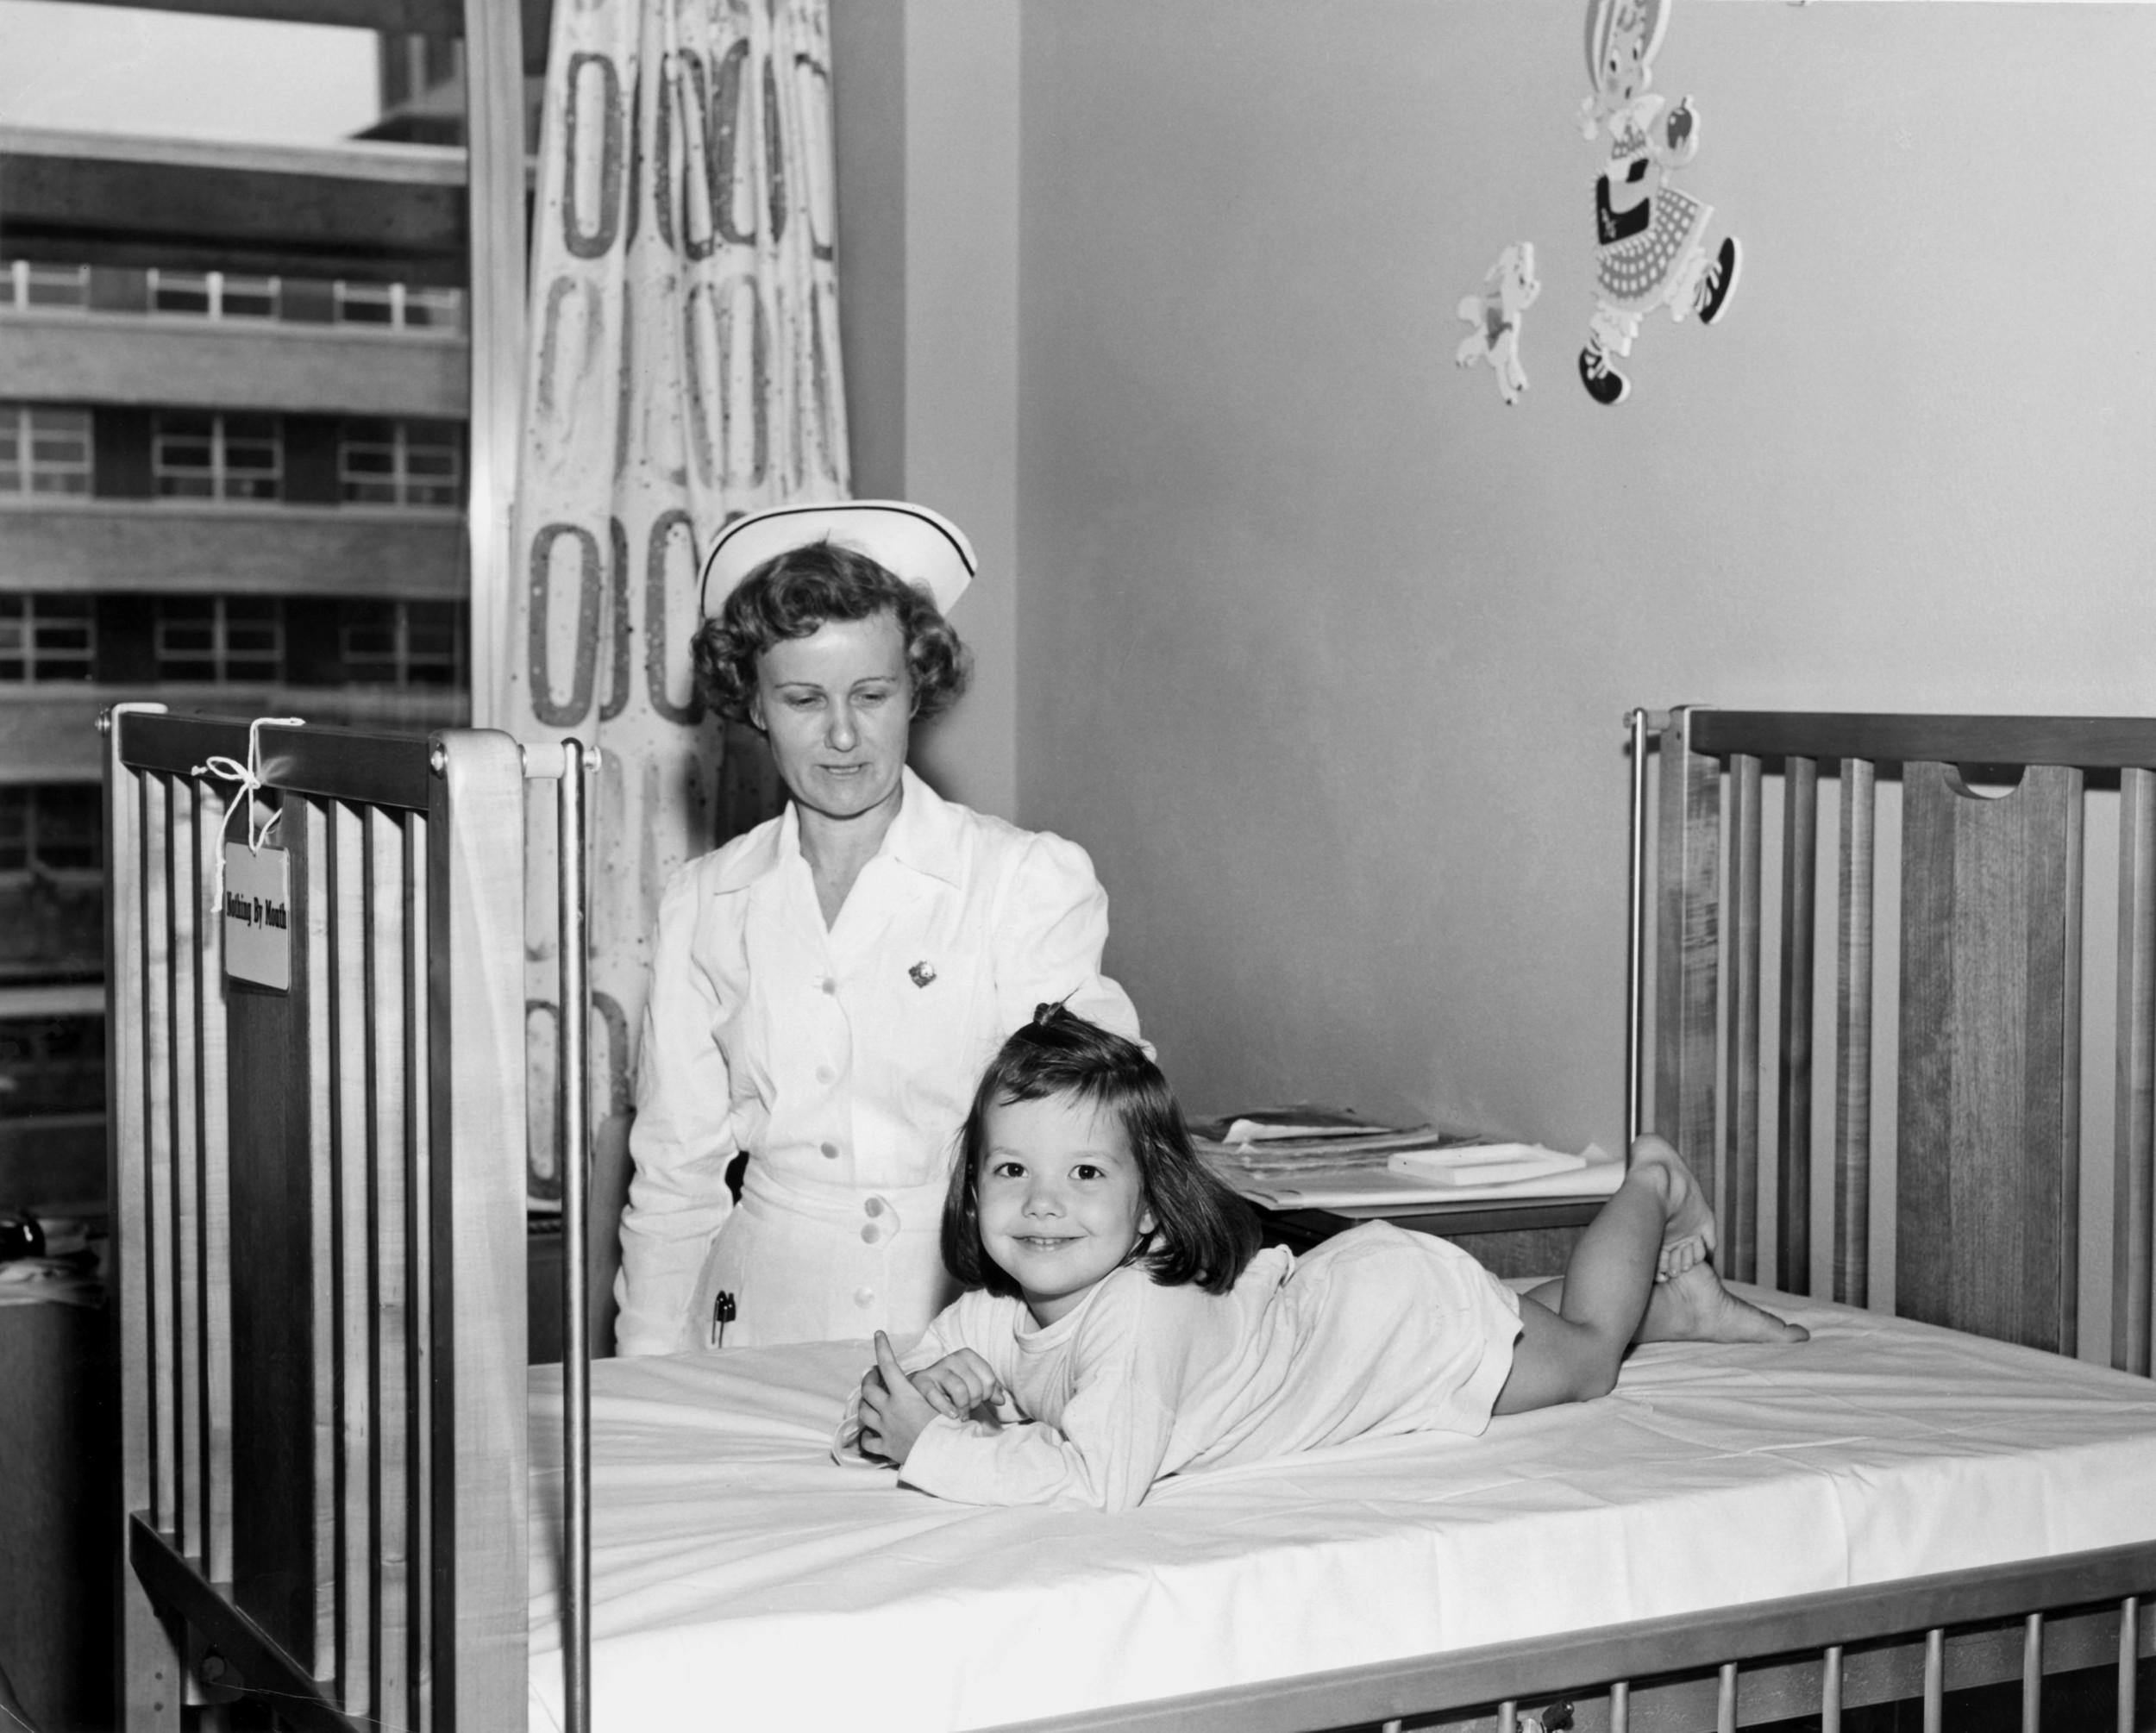 Texas Children's first patient, 3-year-old Lamaina Leigh Van Wagner, in 1954.